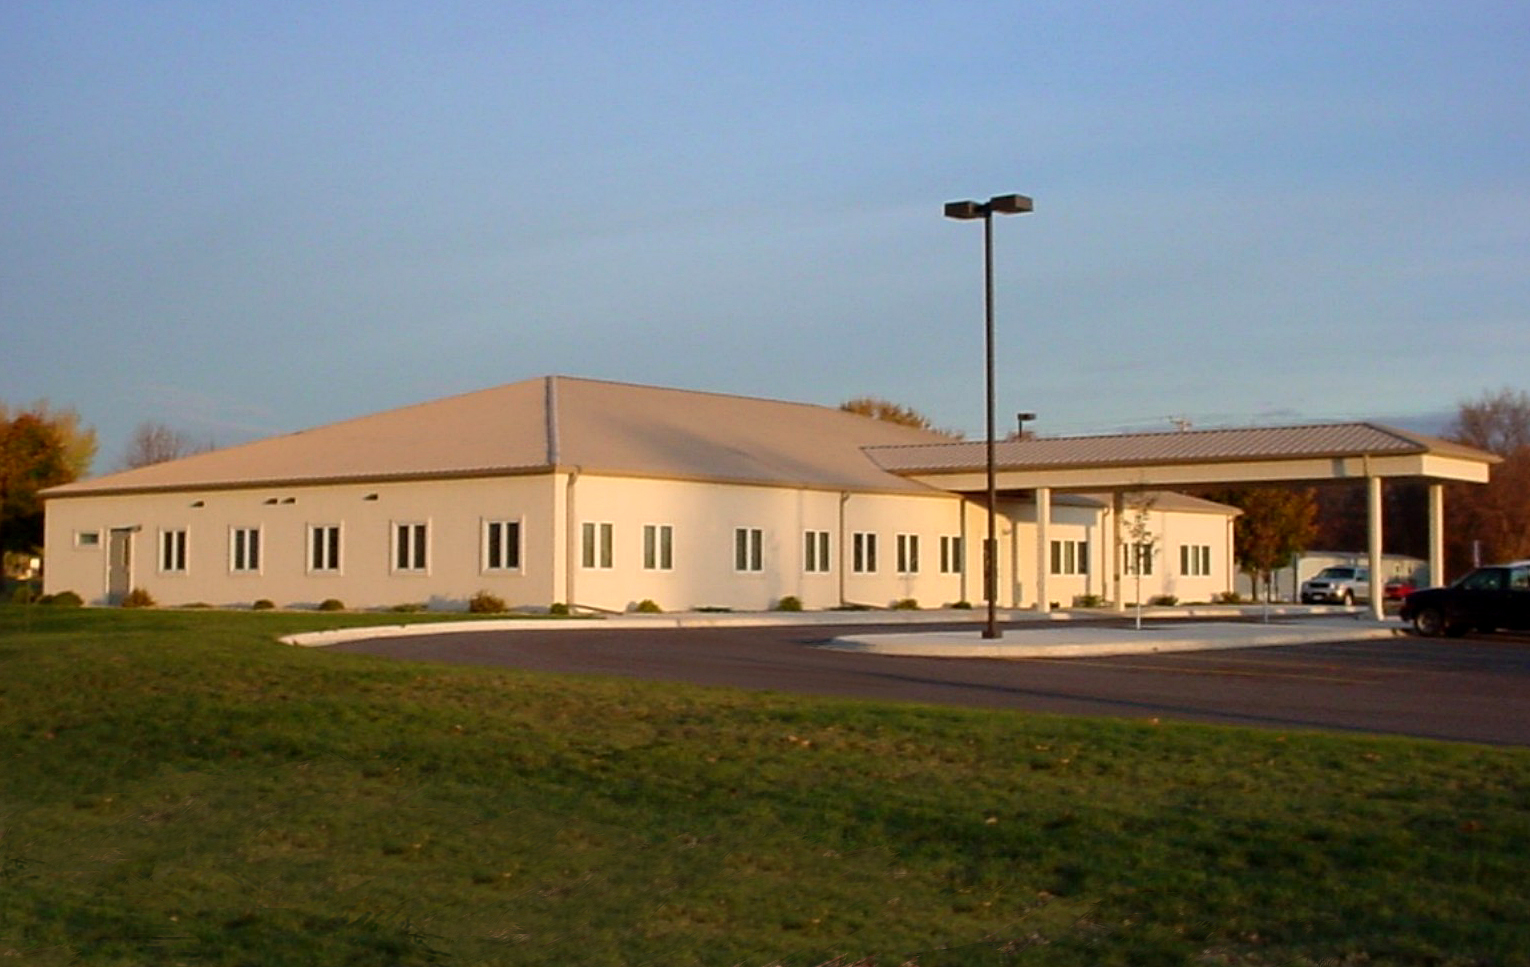 Hereford Health Center